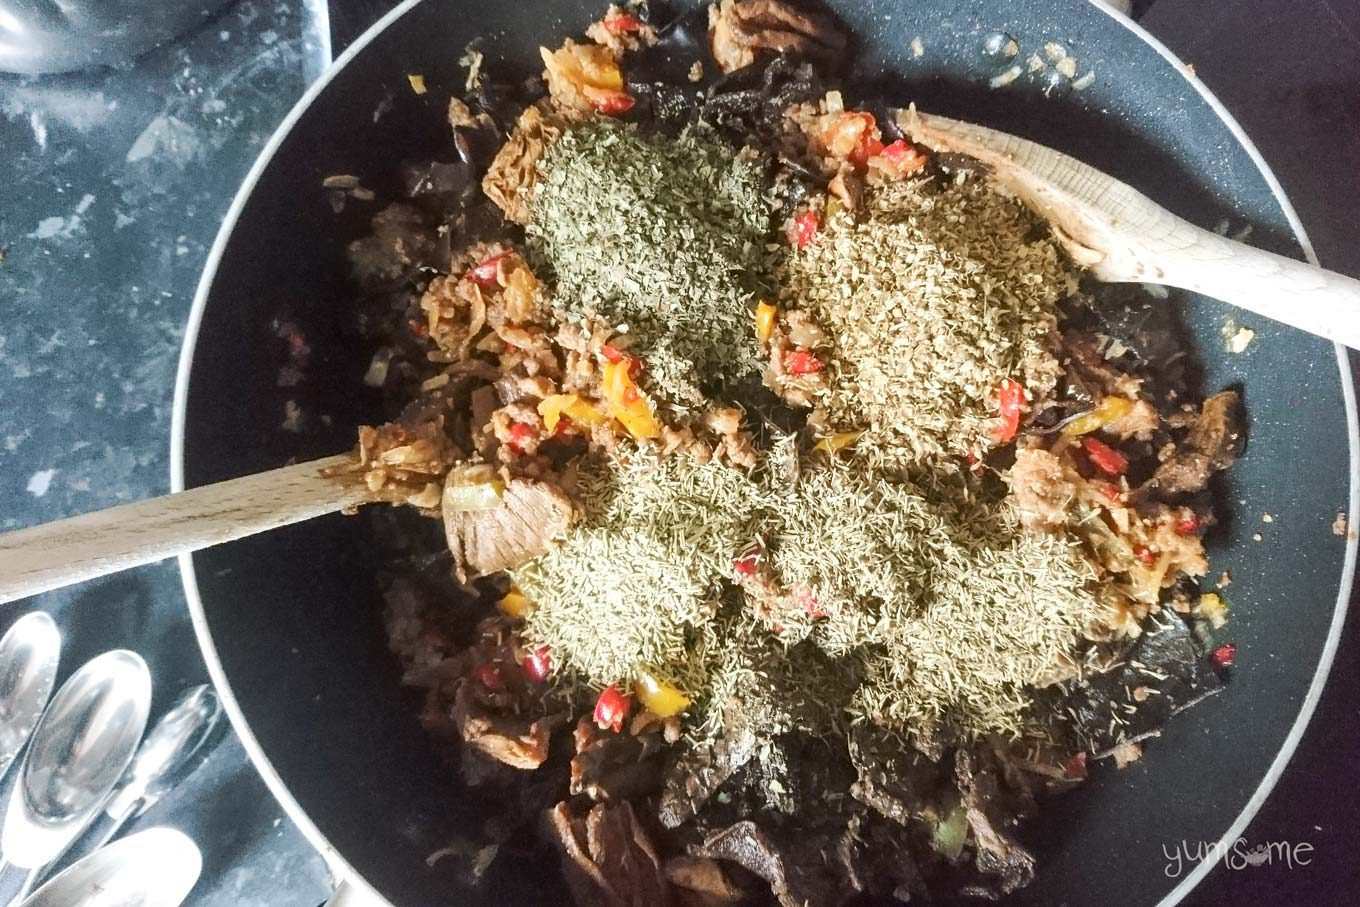 Various dried herbs added to the veggie mince mix.